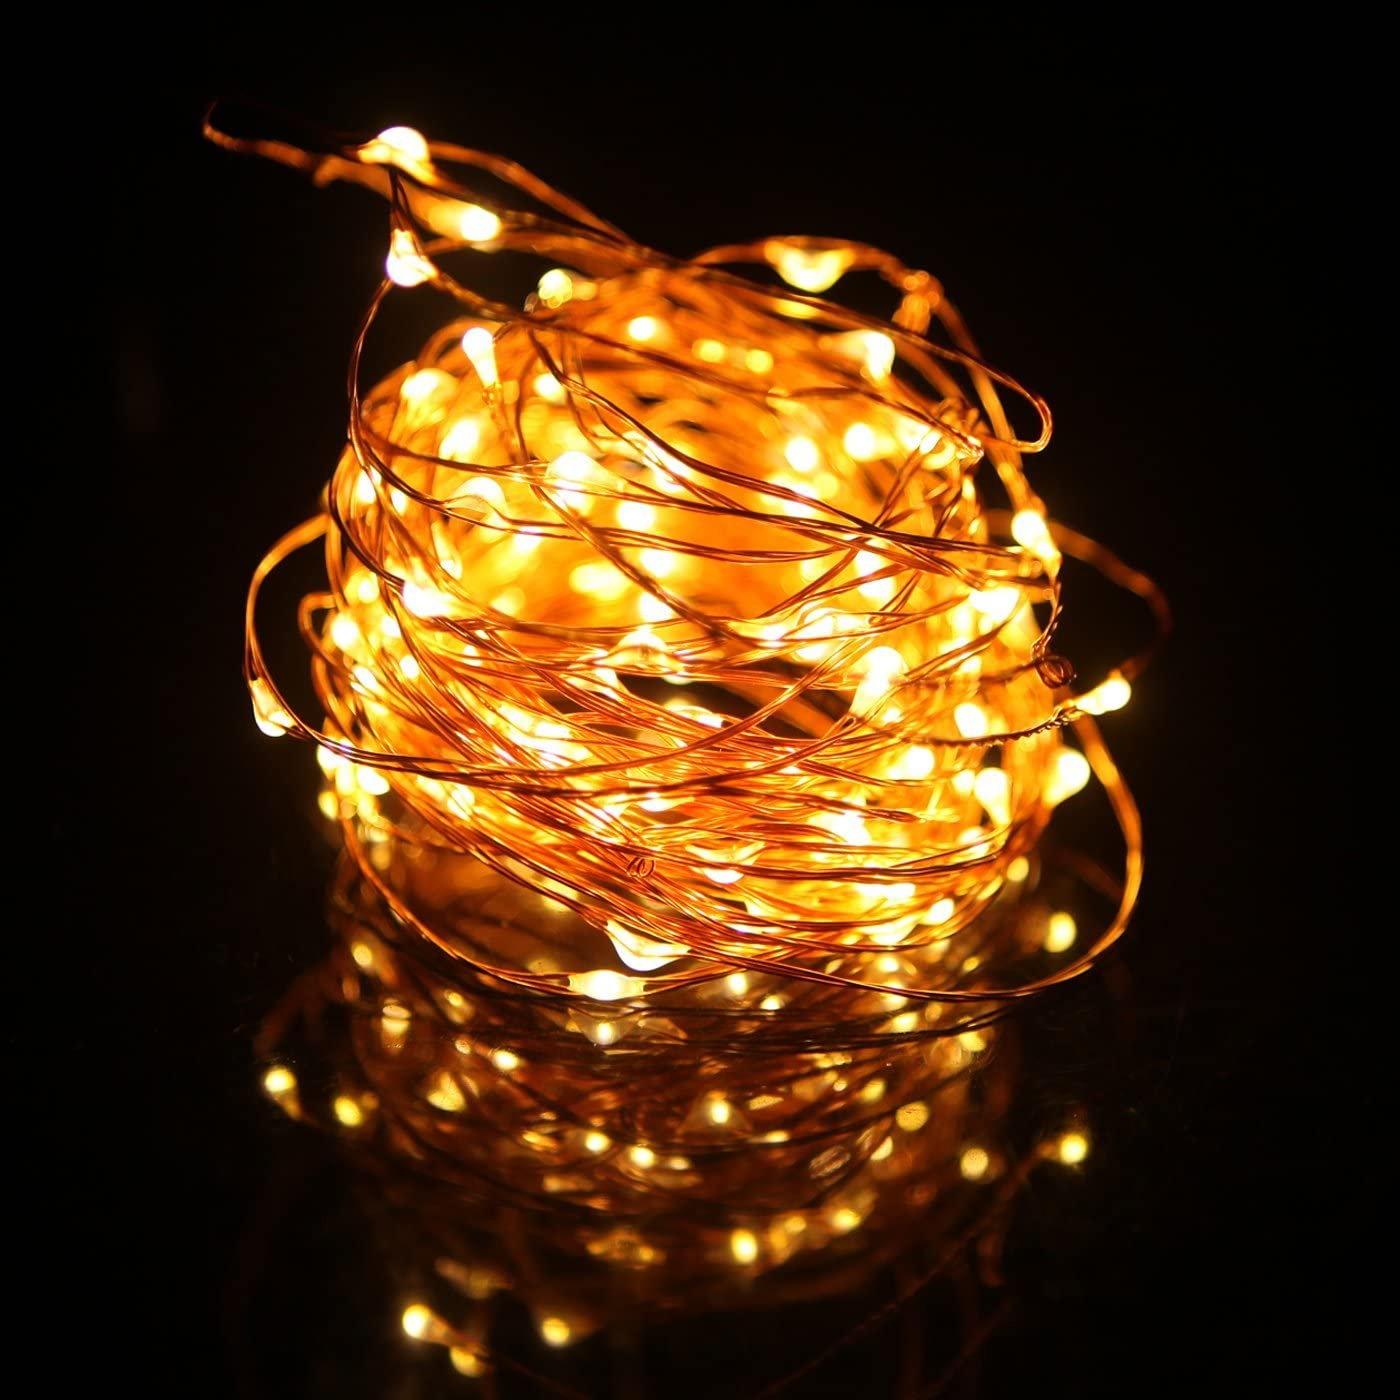 HDE Waterproof LED String Lights [Flexible Copper Wire] Indoor Outdoor Lighting Fairy Light Strand with Power Adapter - College Dorm Room Accessory (33 feet) - Warm White